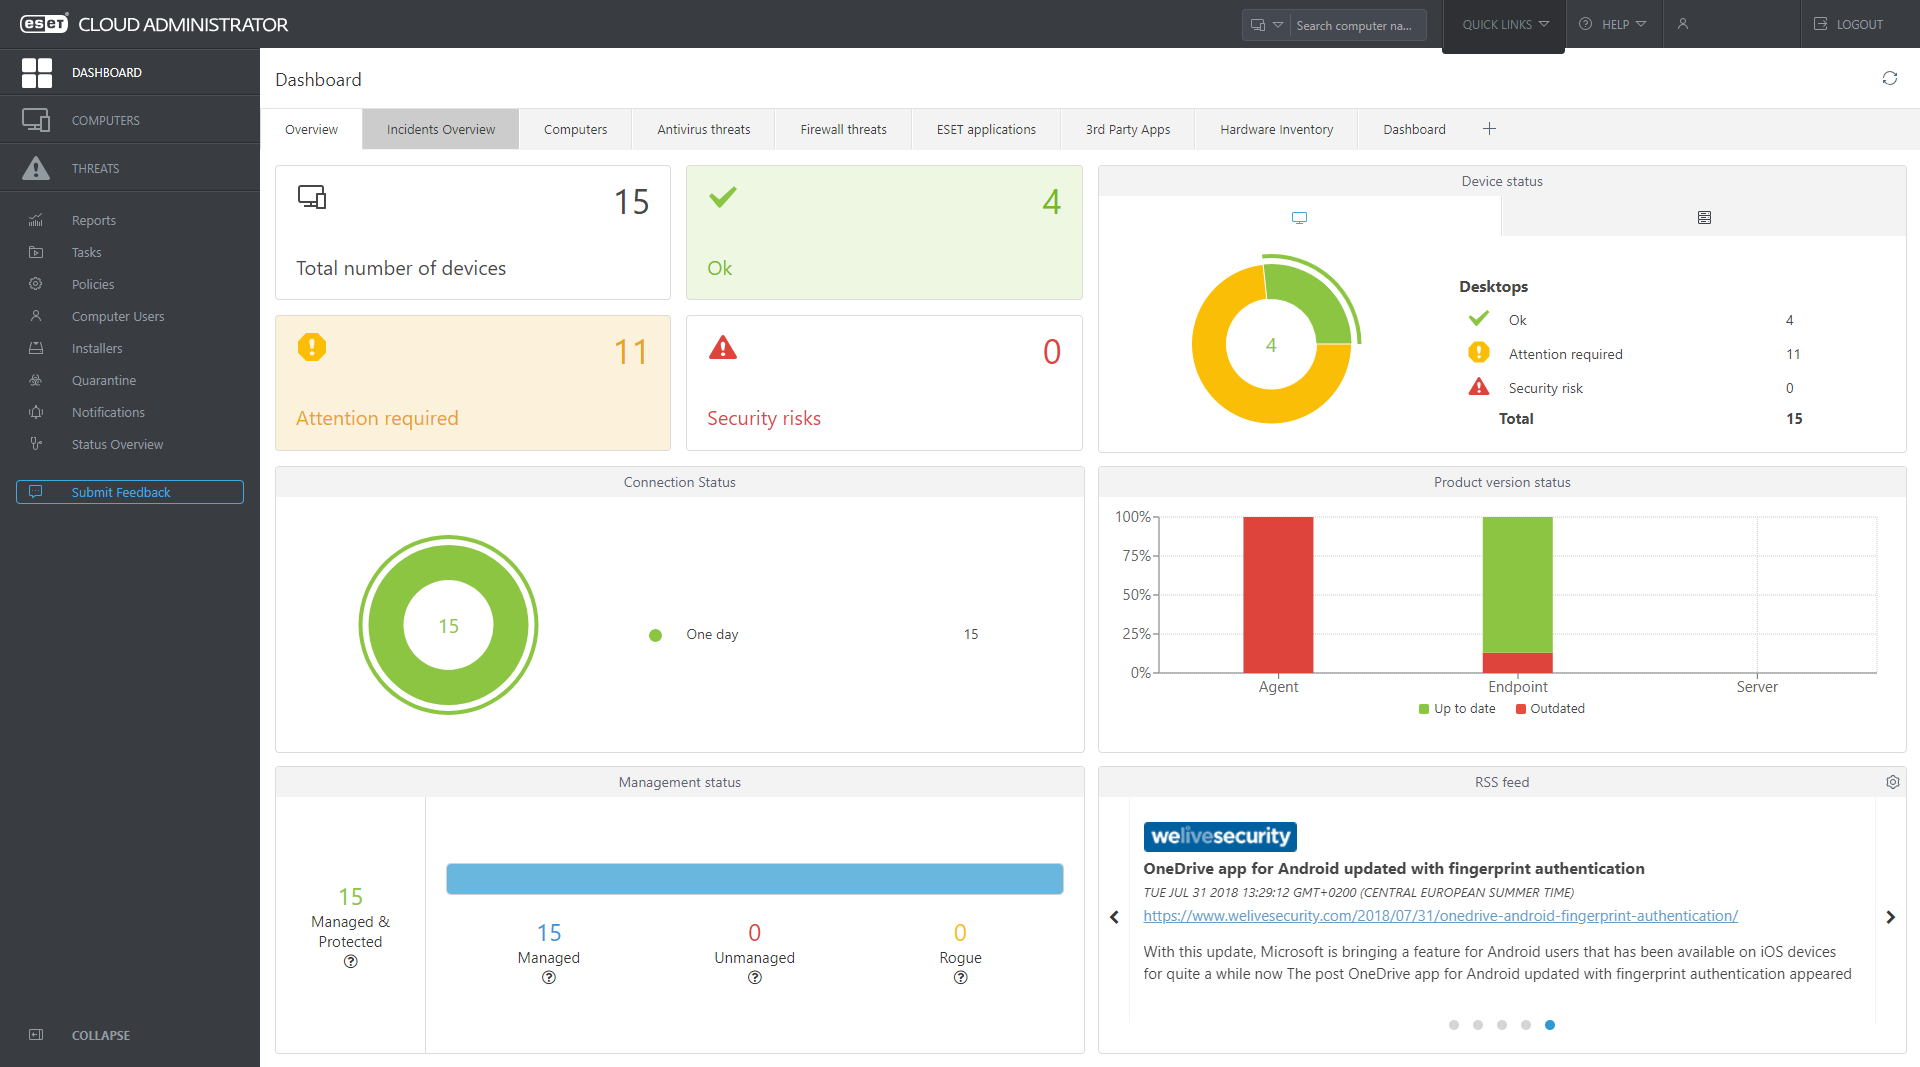 ESET Cloud Administrator - Dashboard - Overview